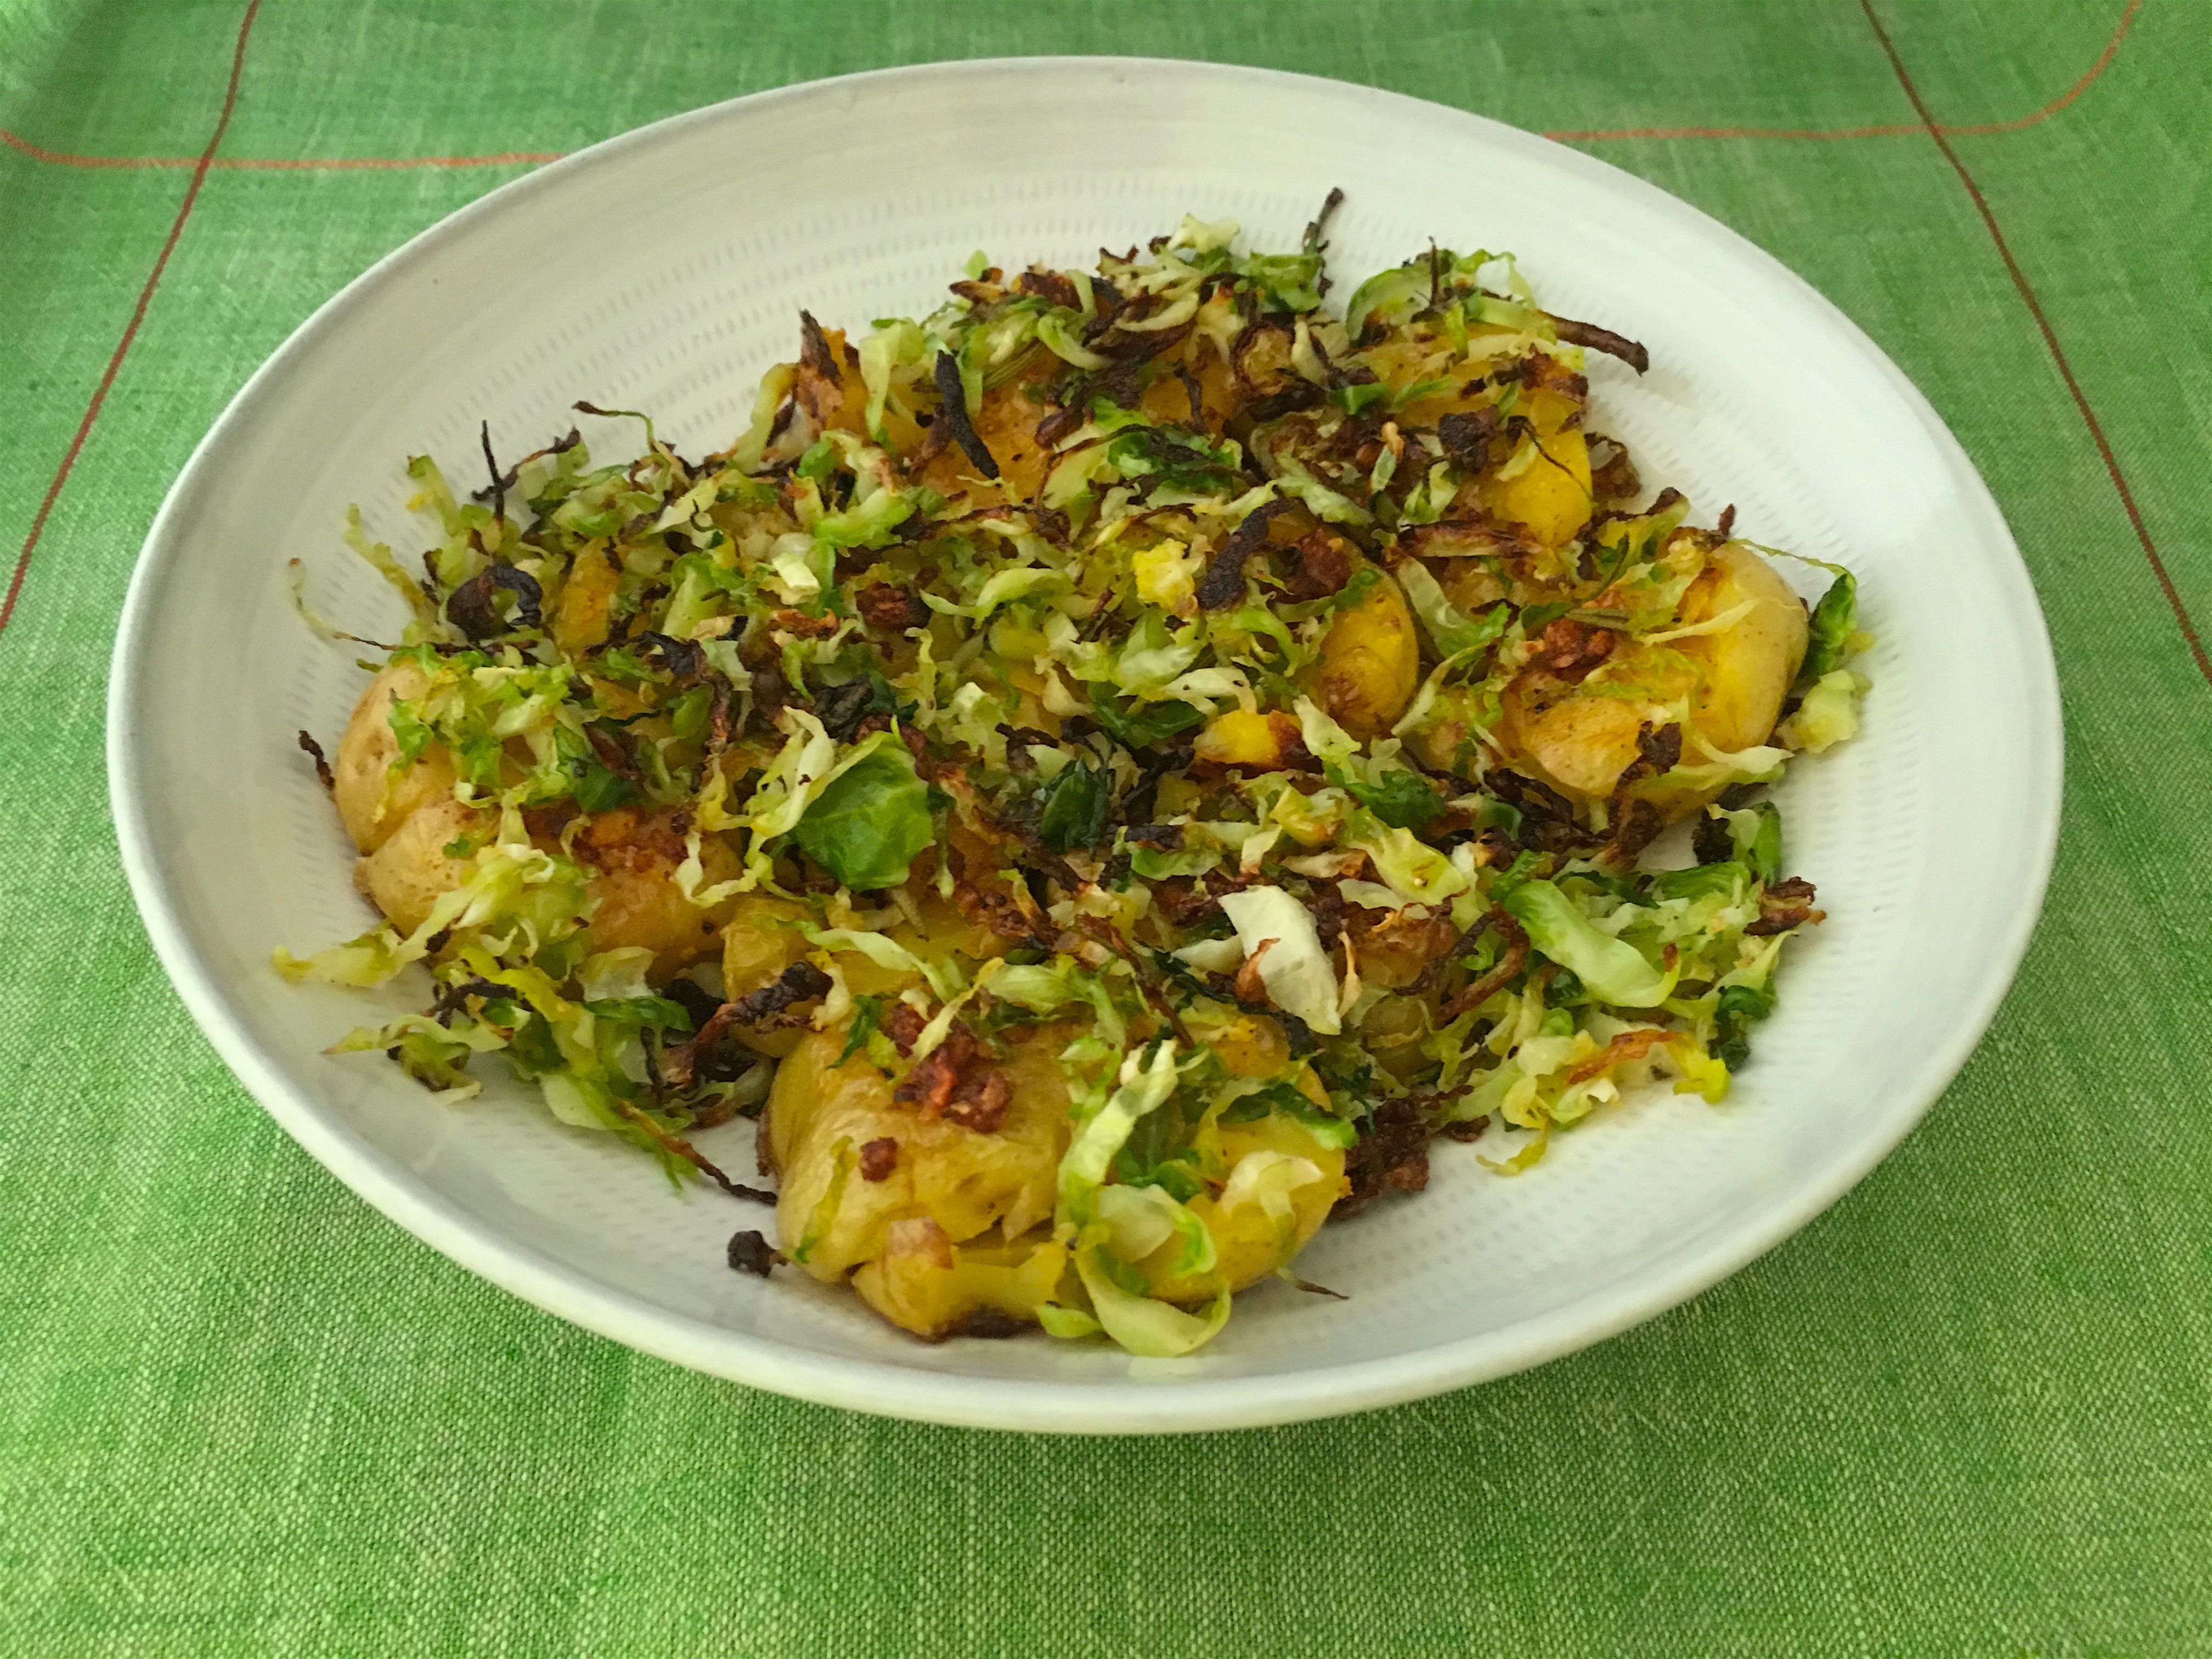 Smashed Potatoes with Shredded Brussels Sprouts #smashedbrusselsprouts